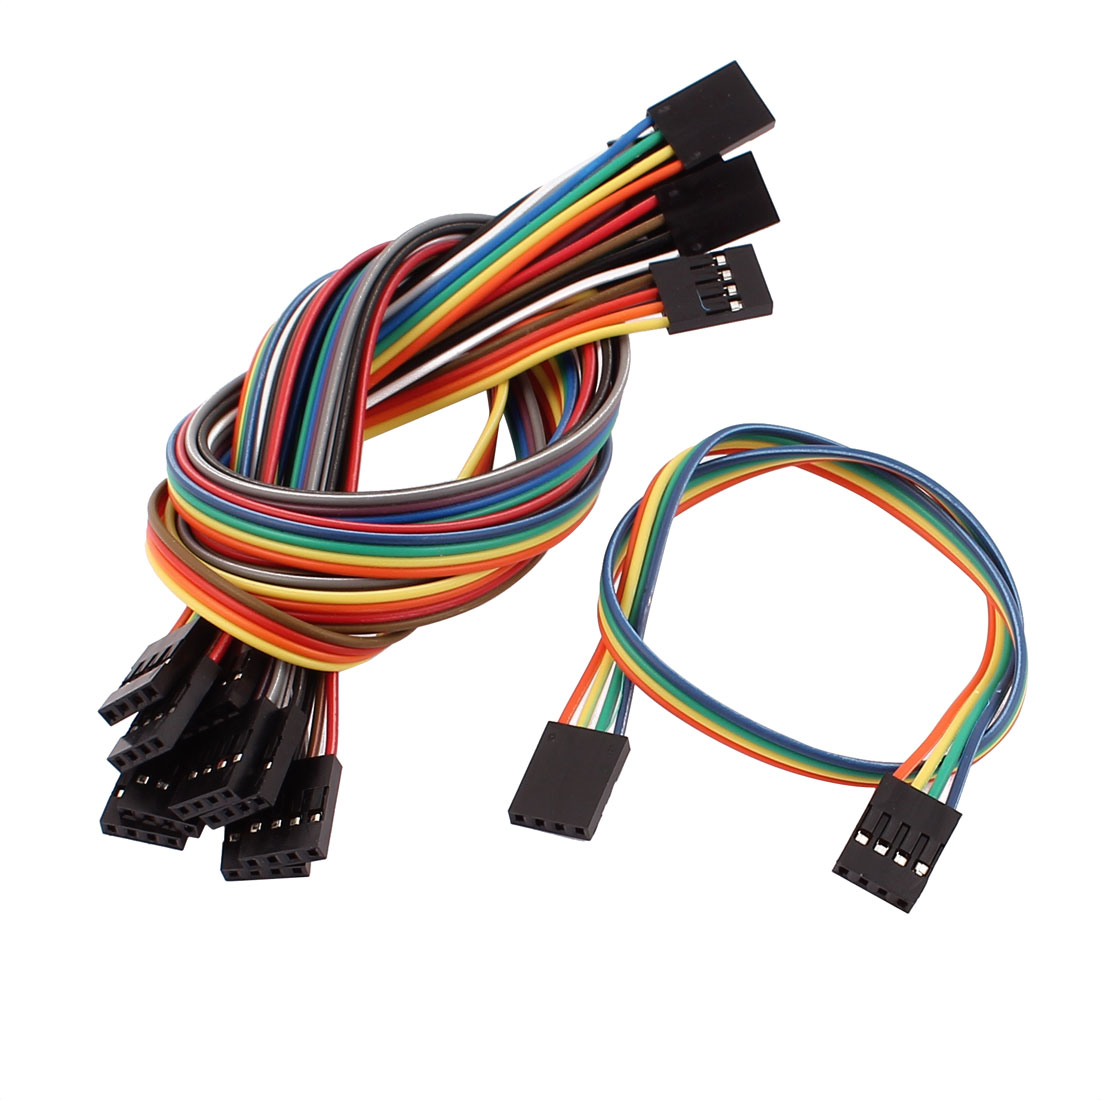 10 Pcs Female to Female 4P Jumper Wire Ribbon Cable Pi Pic Breadboard DIY 30cm Long